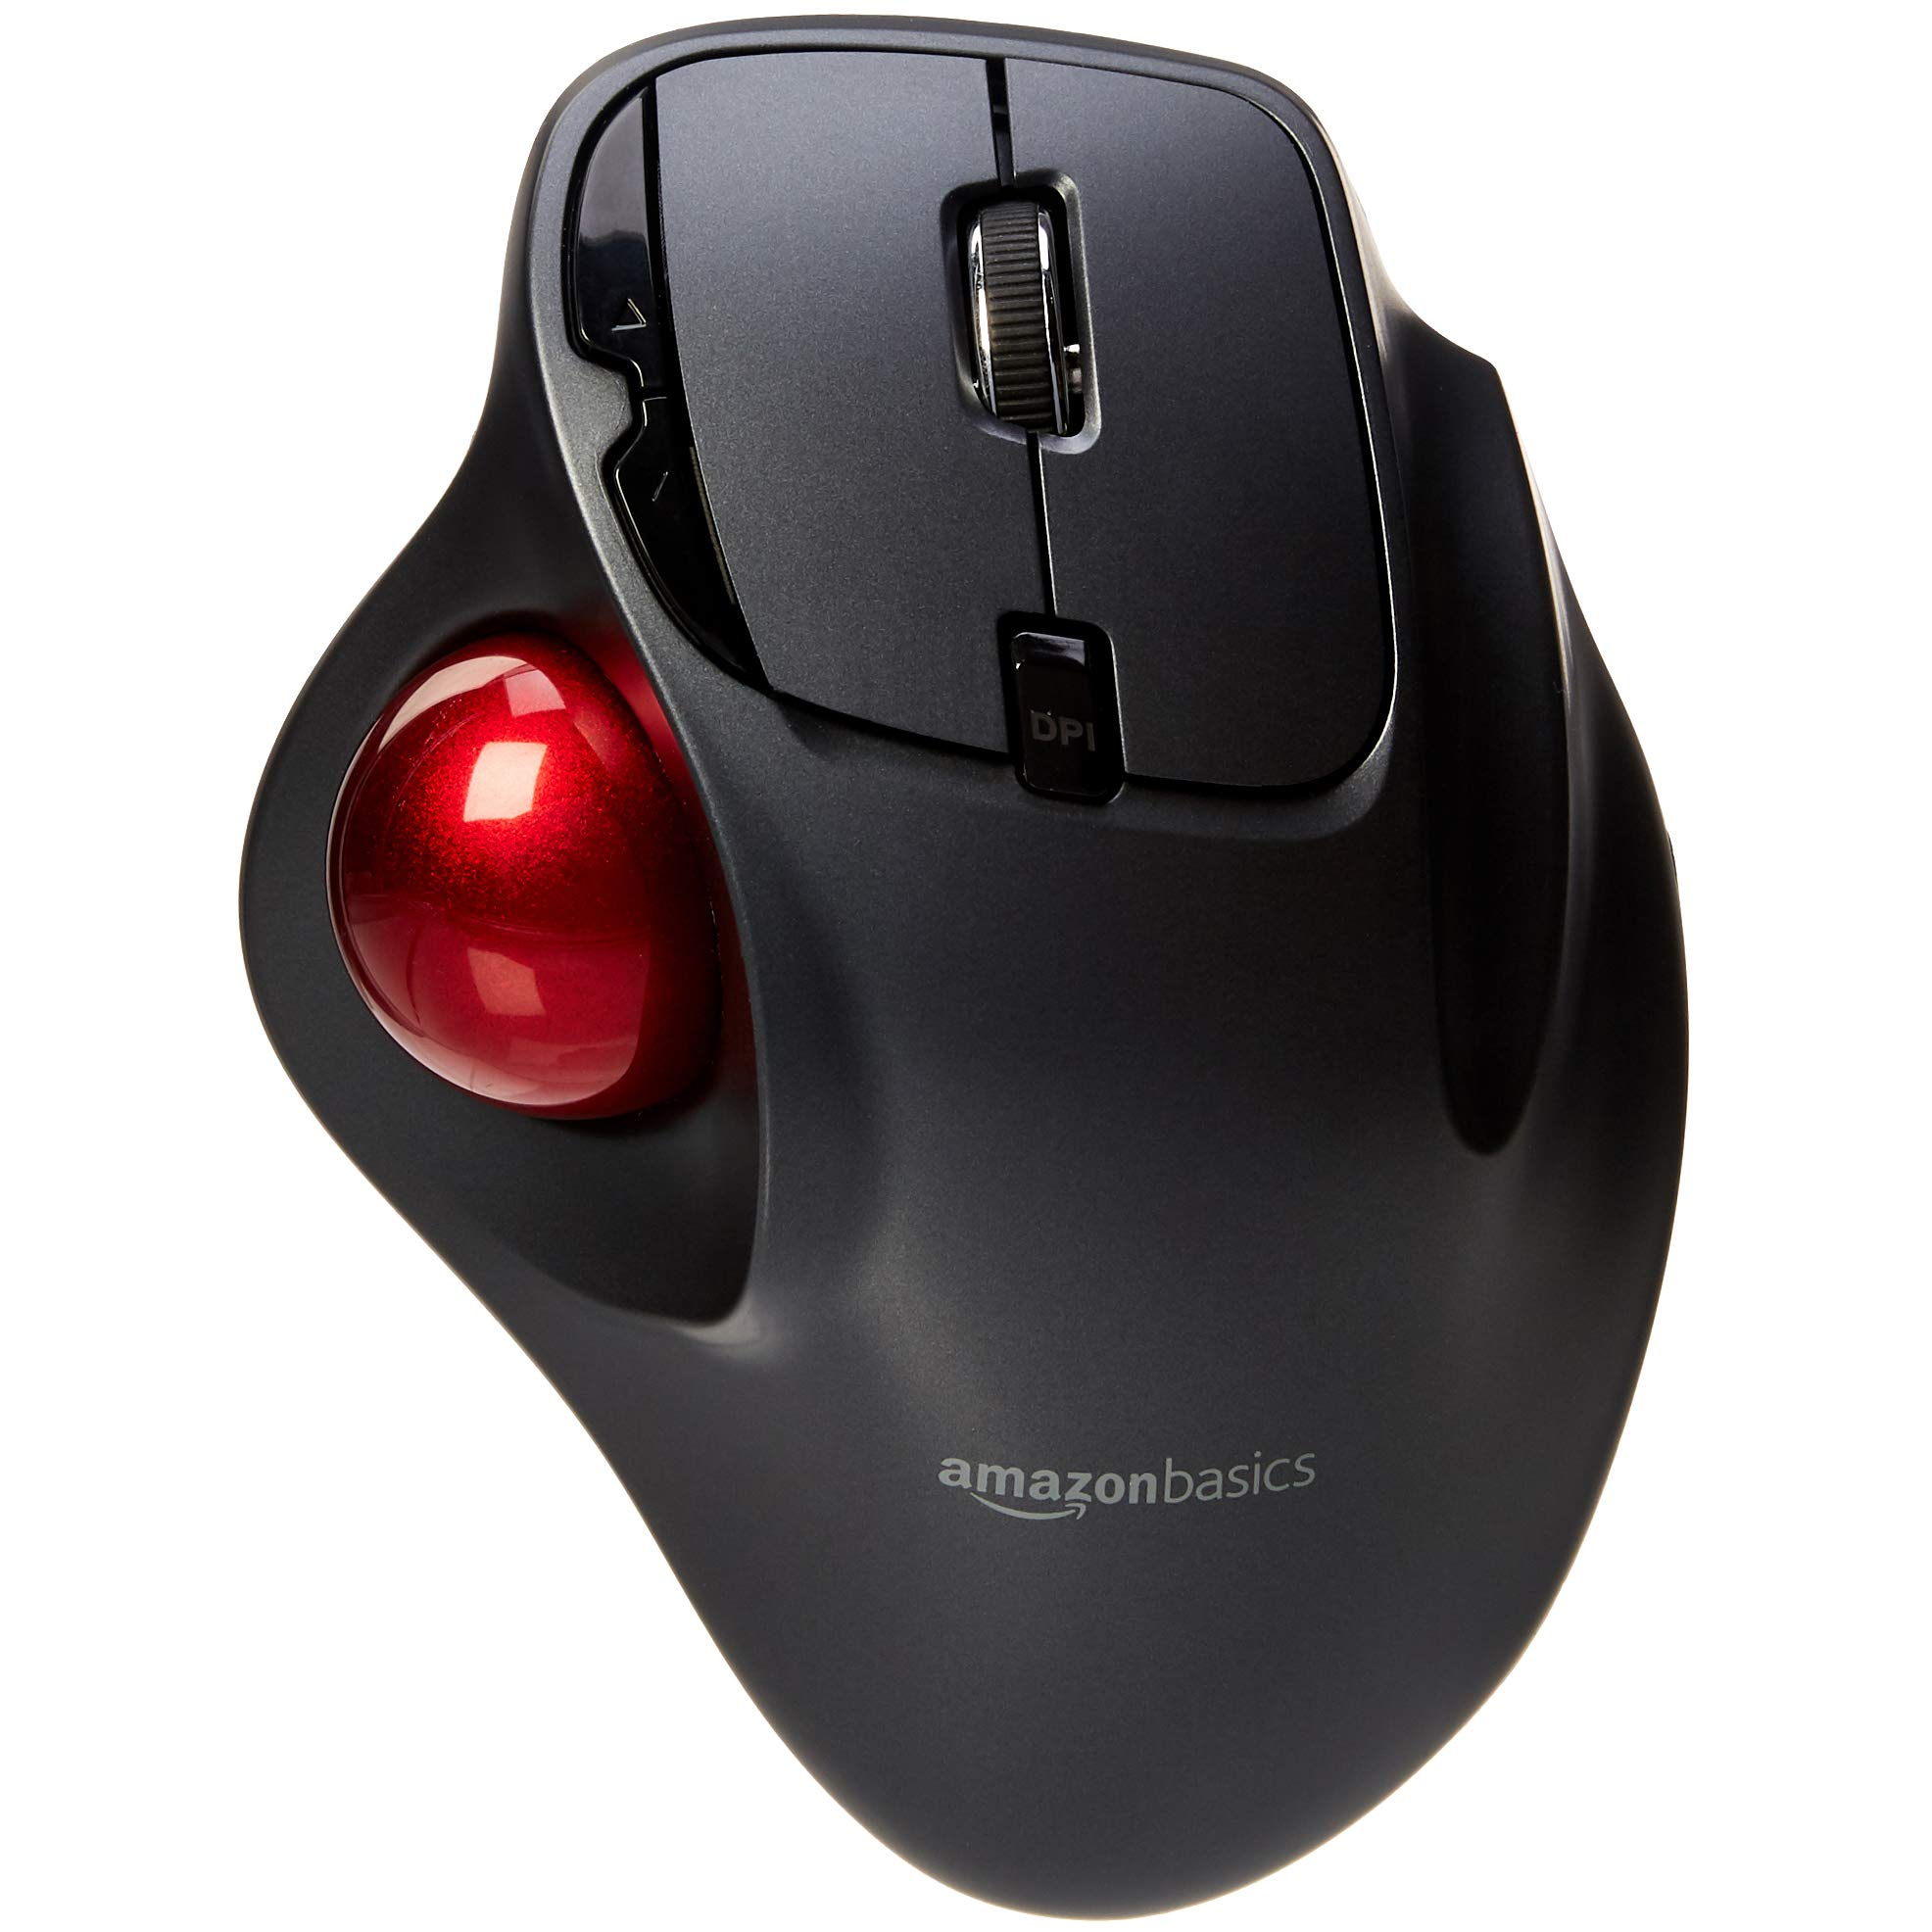 AmazonBasics G5W Wireless Trackball Mouse